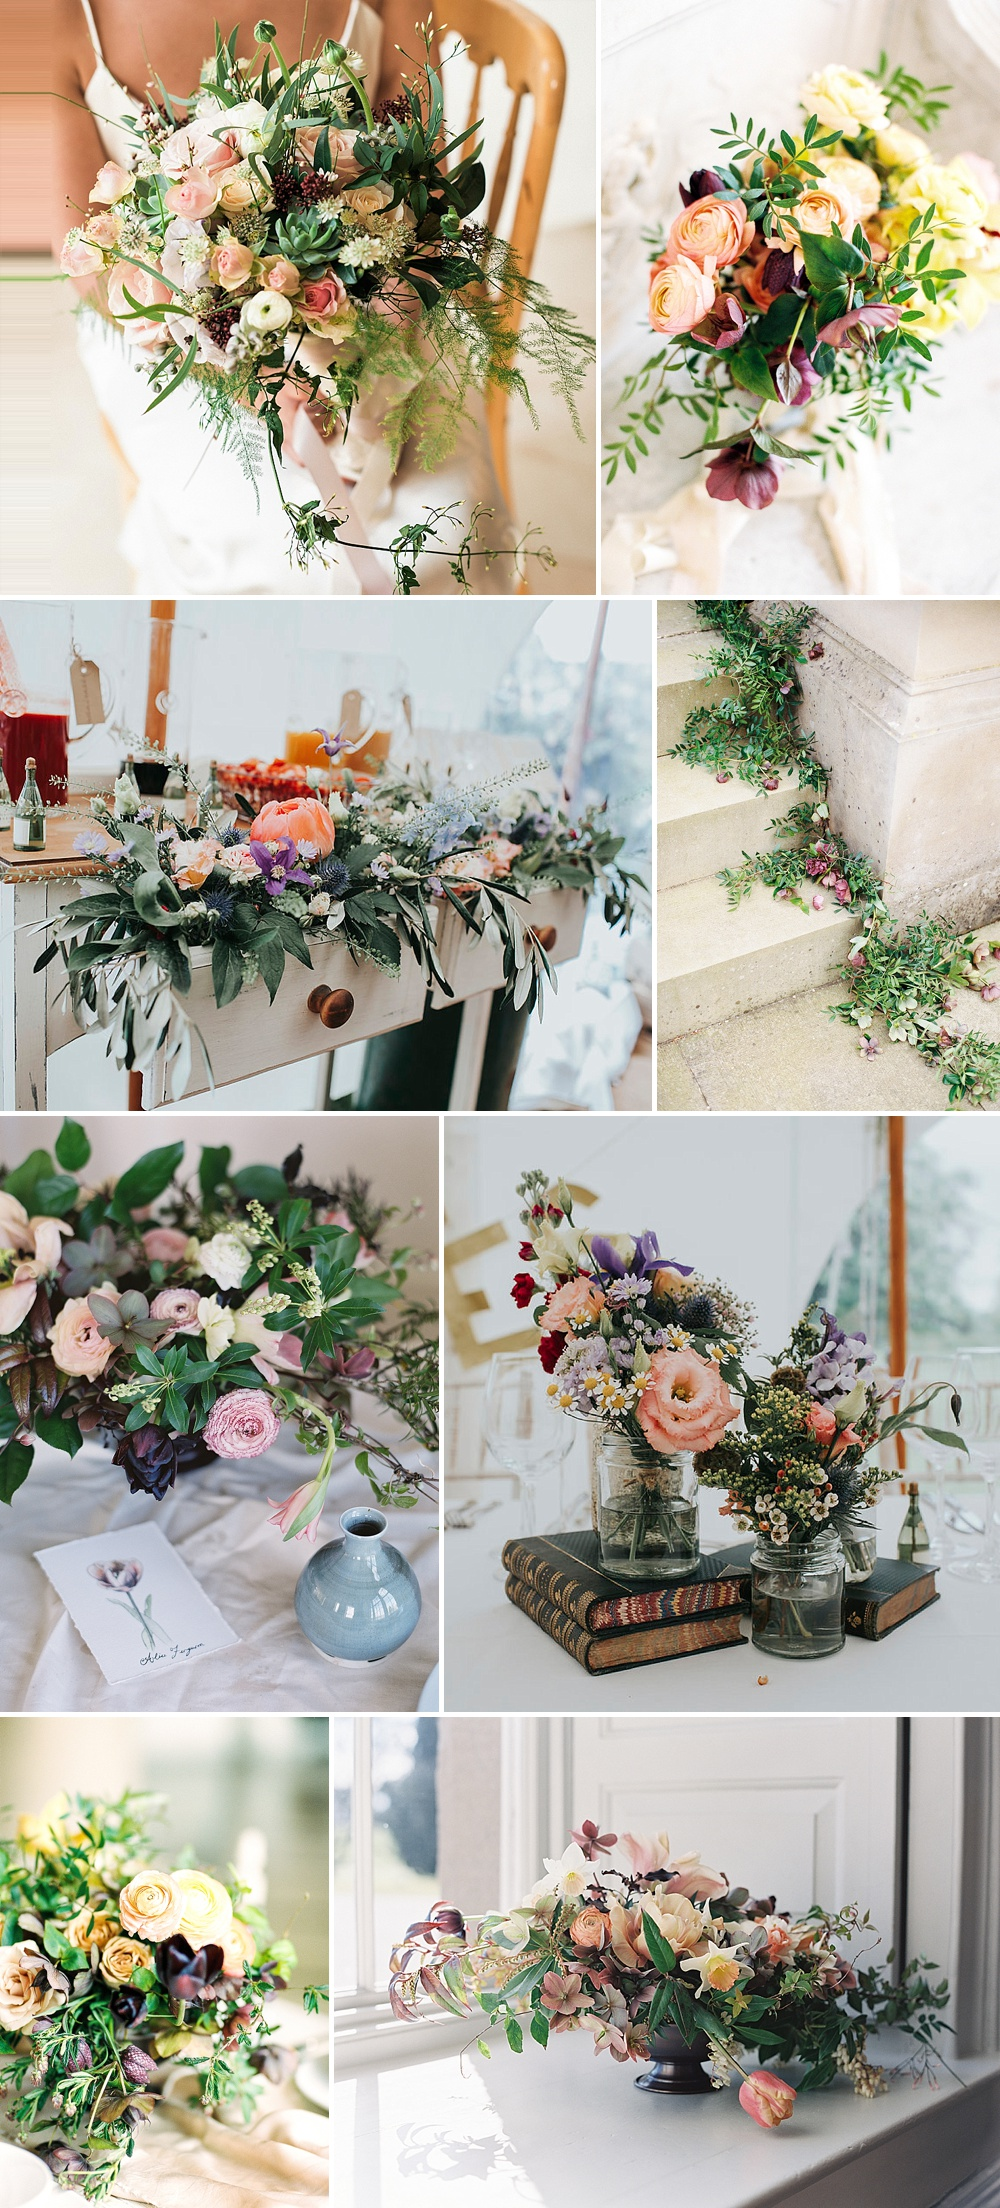 Spring Floral Inspiration For Weddings // The List